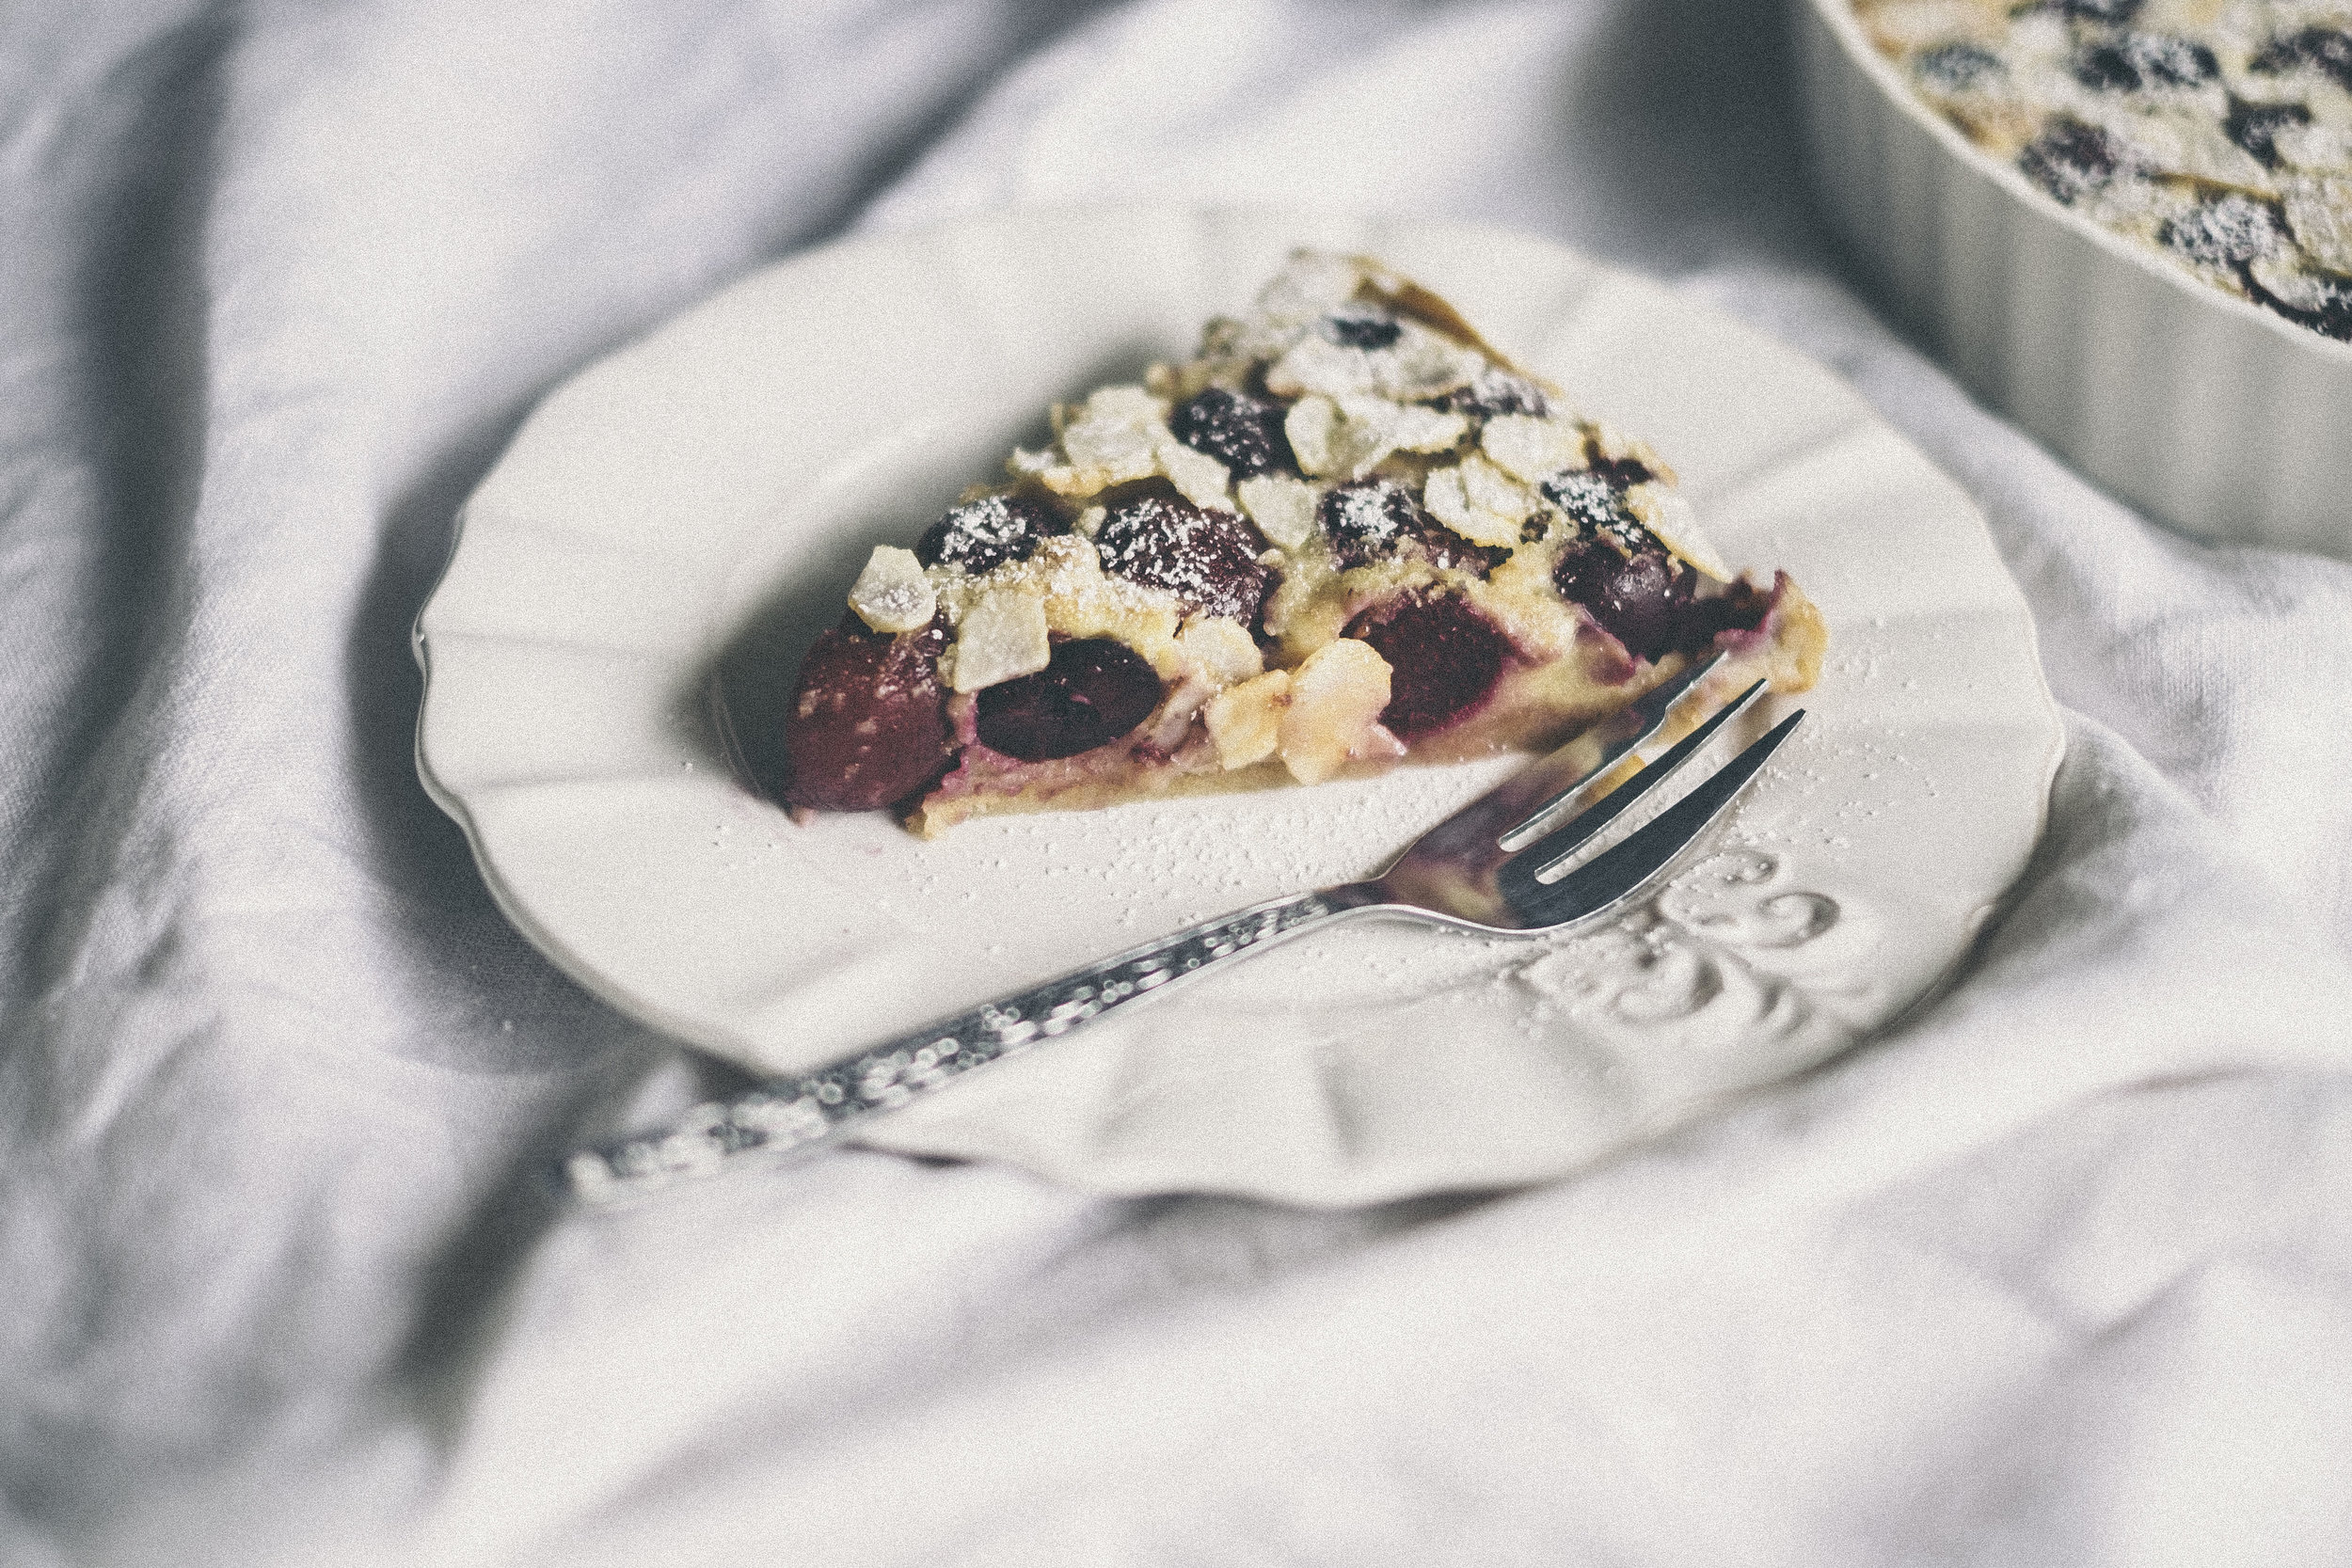 dérrive recipe - cherry, almond and spelt clafoutis www.derrive.com